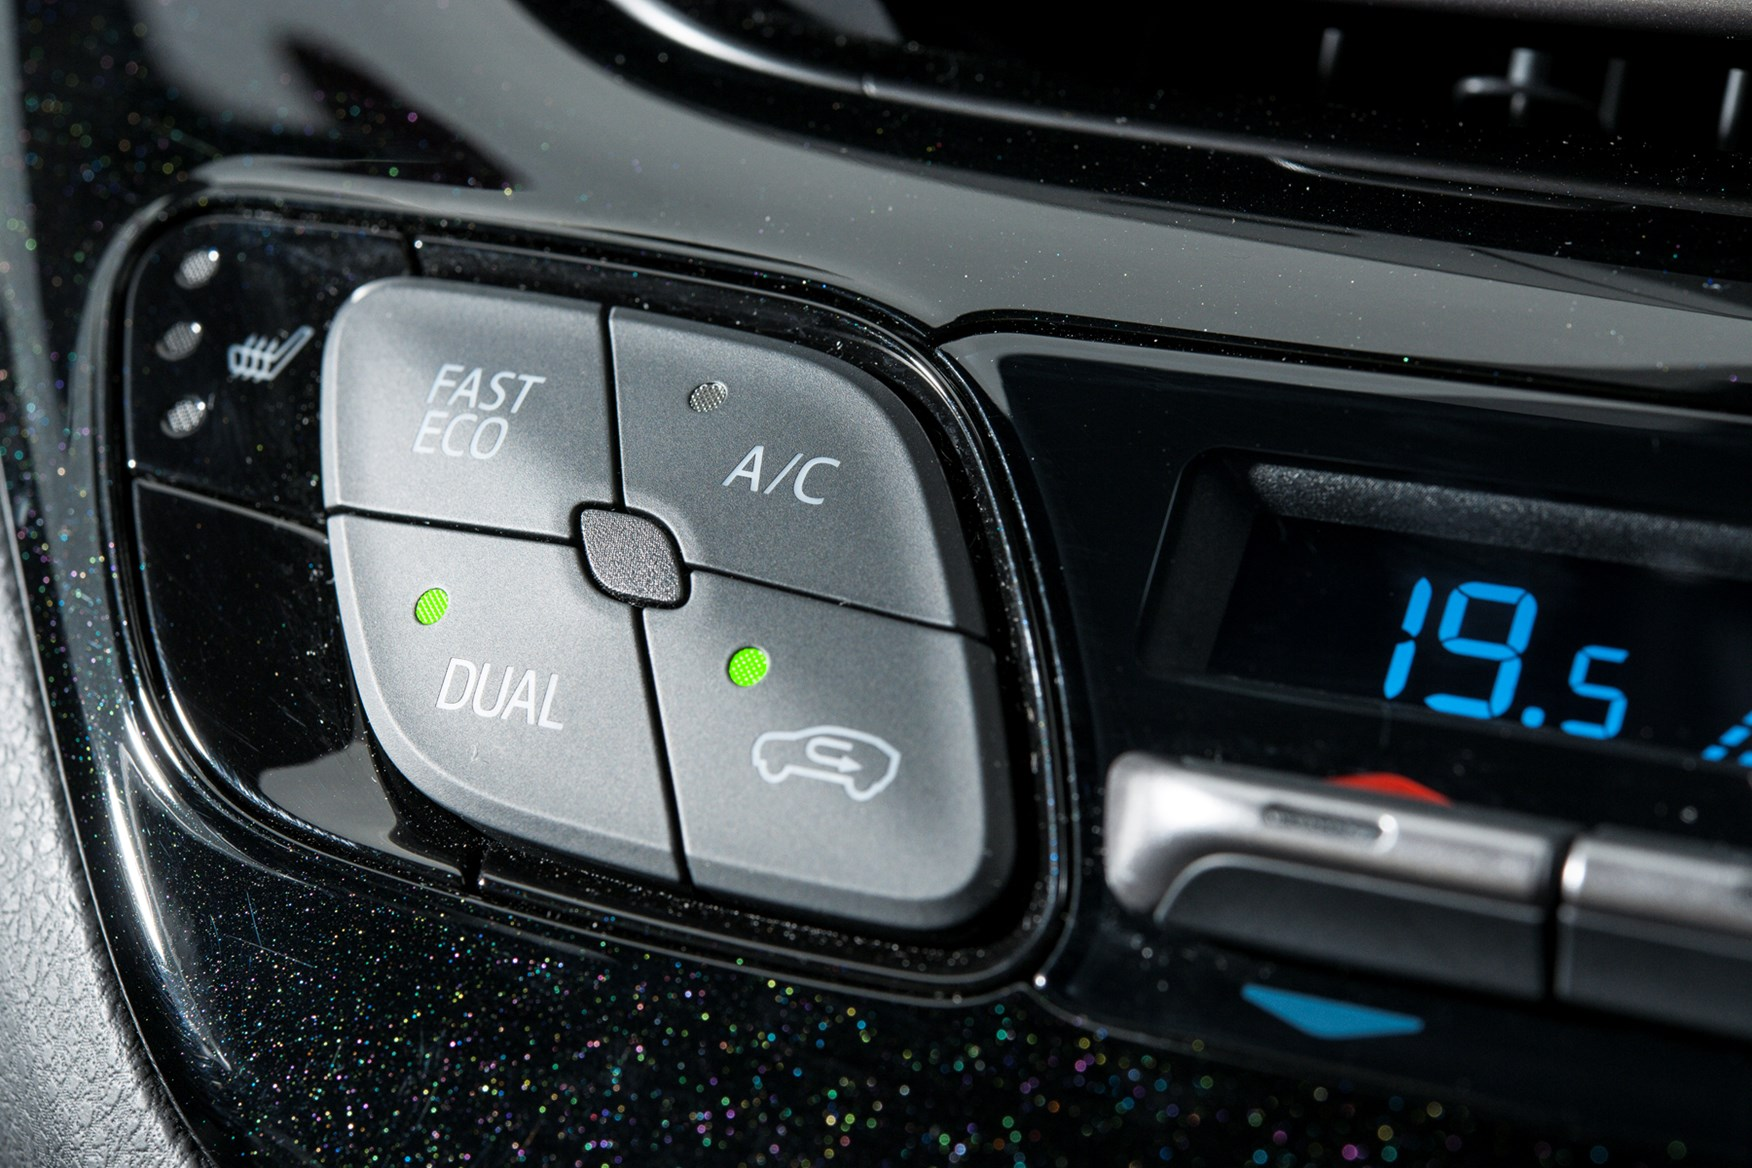 Air-con needed switching off for most of the eco drive in our Toyota C-HR